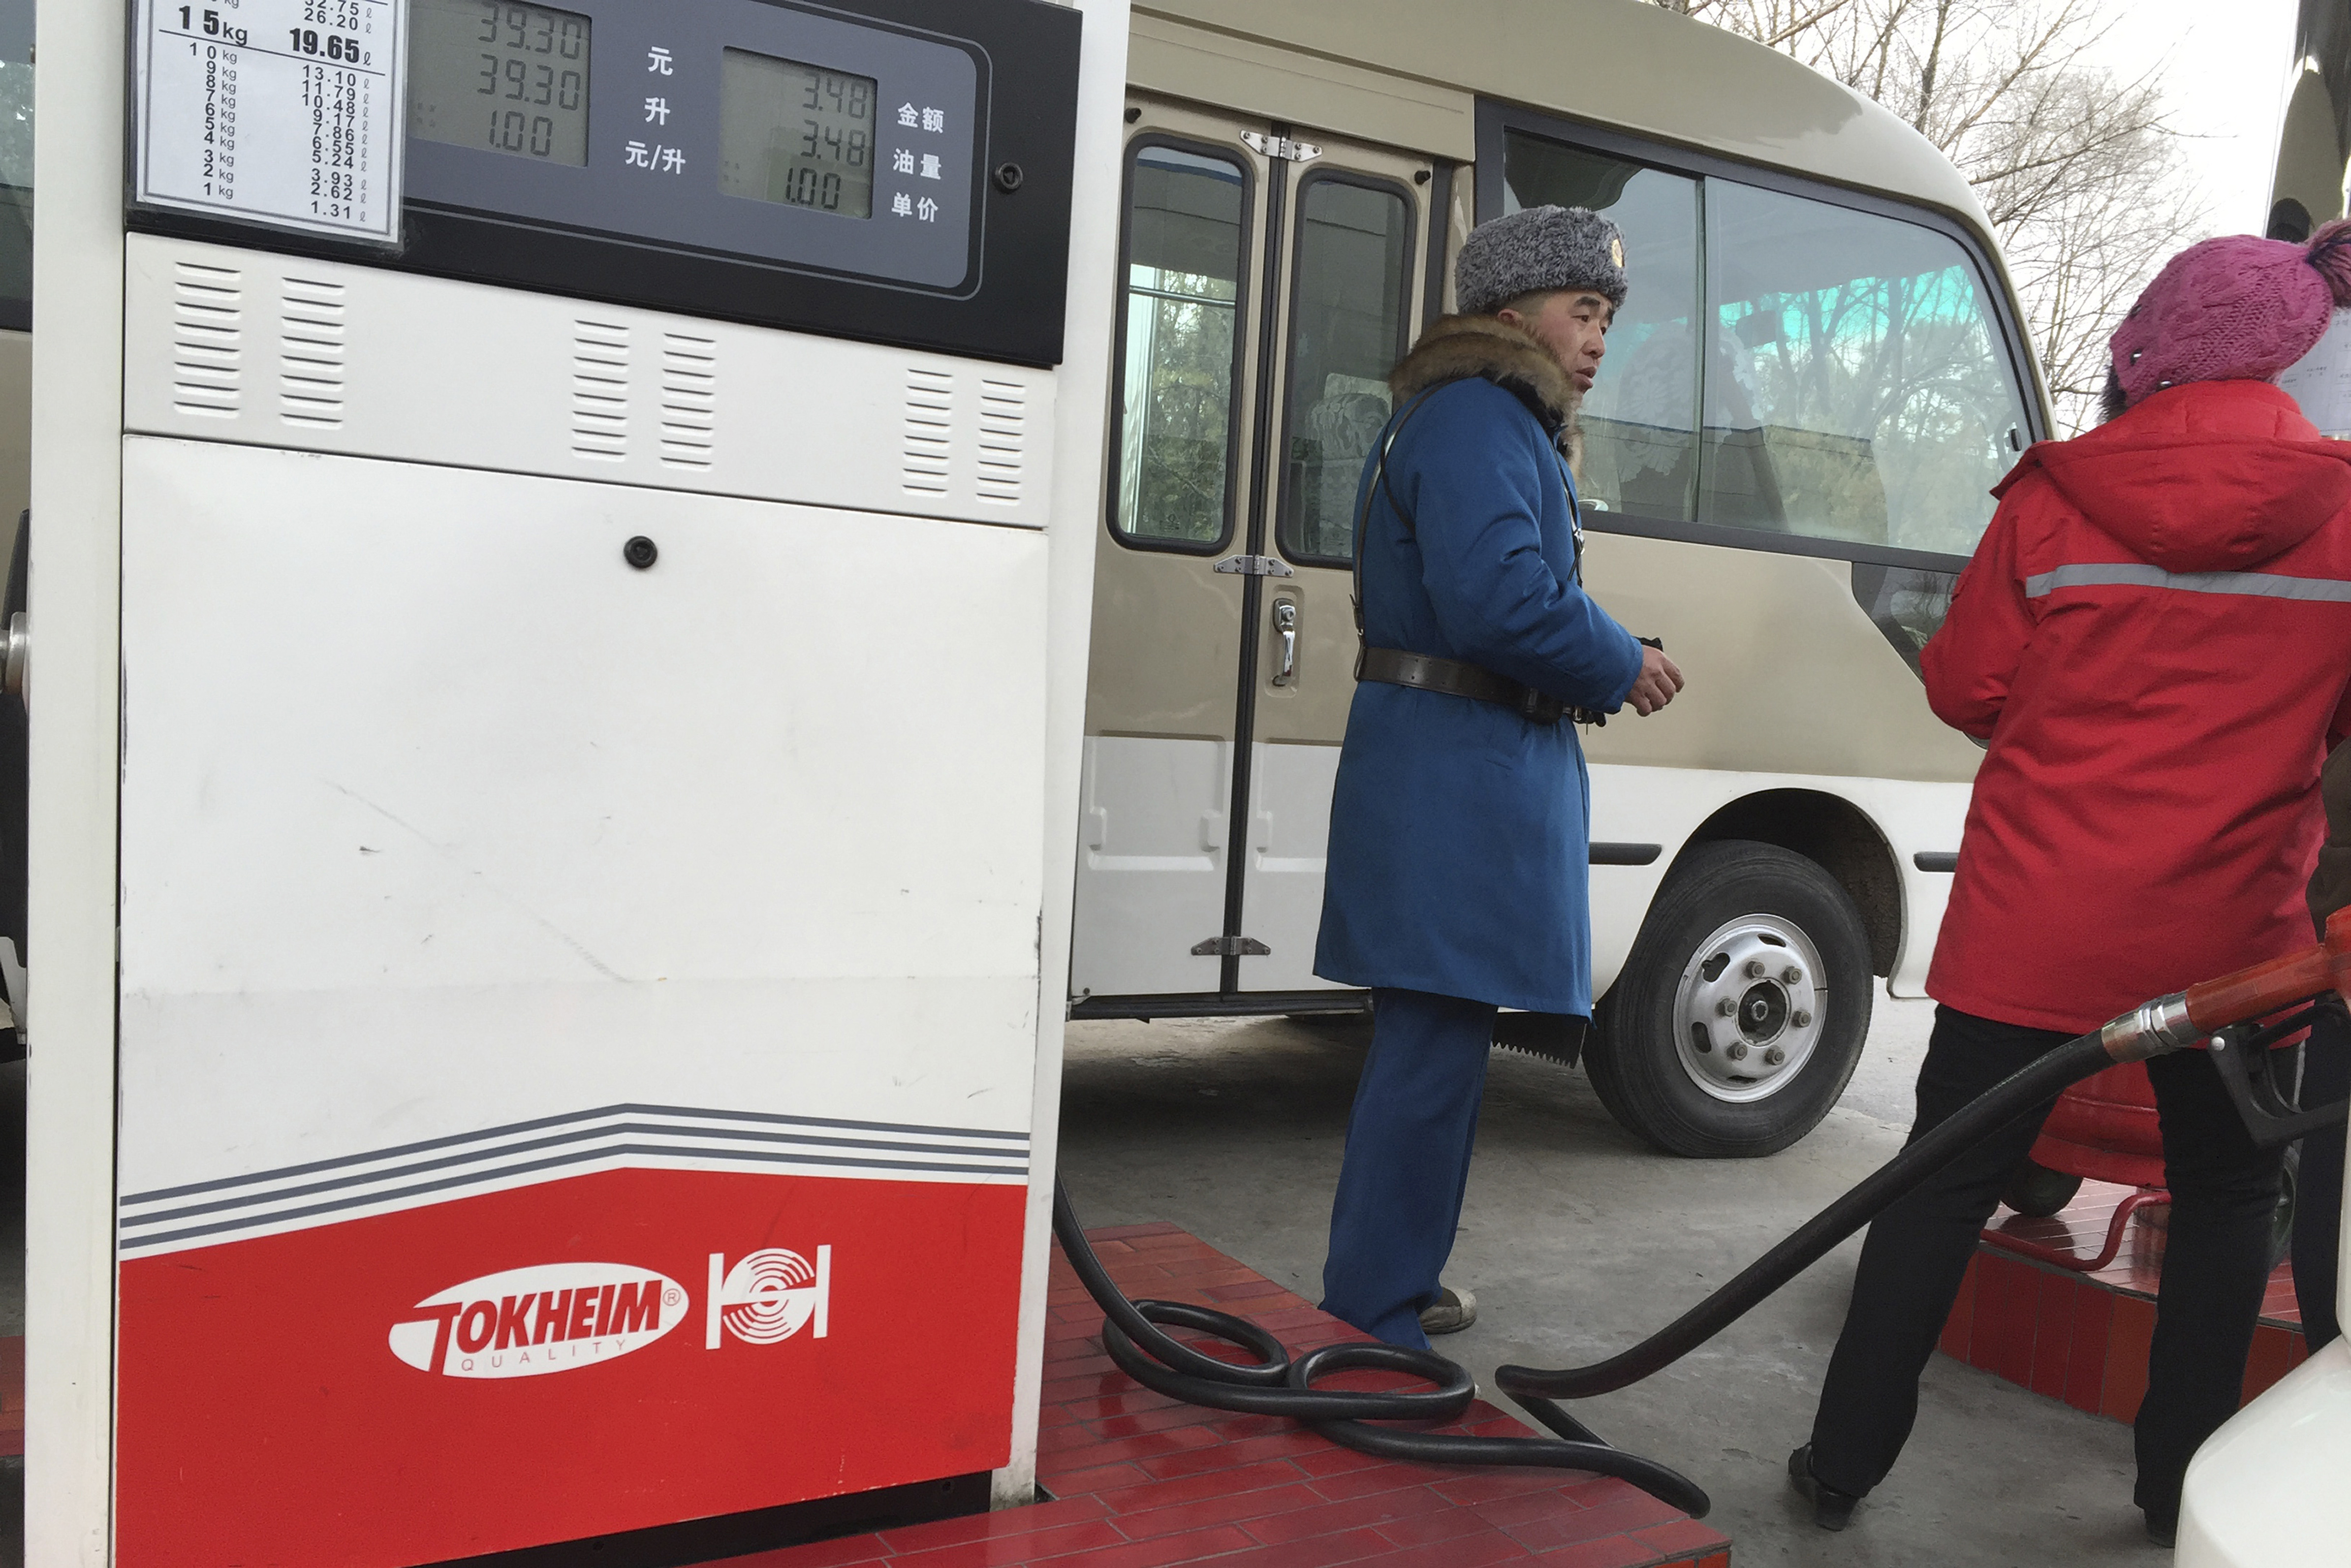 North Korea Gas FILE - In this Feb. 22, 2016, file photo, a customer talks to a gas station attendant in Pyongyang, North Korea. Car users in Pyongyang are scrambling to fill up their tanks as gas stations limit services and close their gates amid concerns of a possible shortage. The cause of the restrictions or how long they might last were not immediately known. (AP Photo/Eric Talmadge, File)